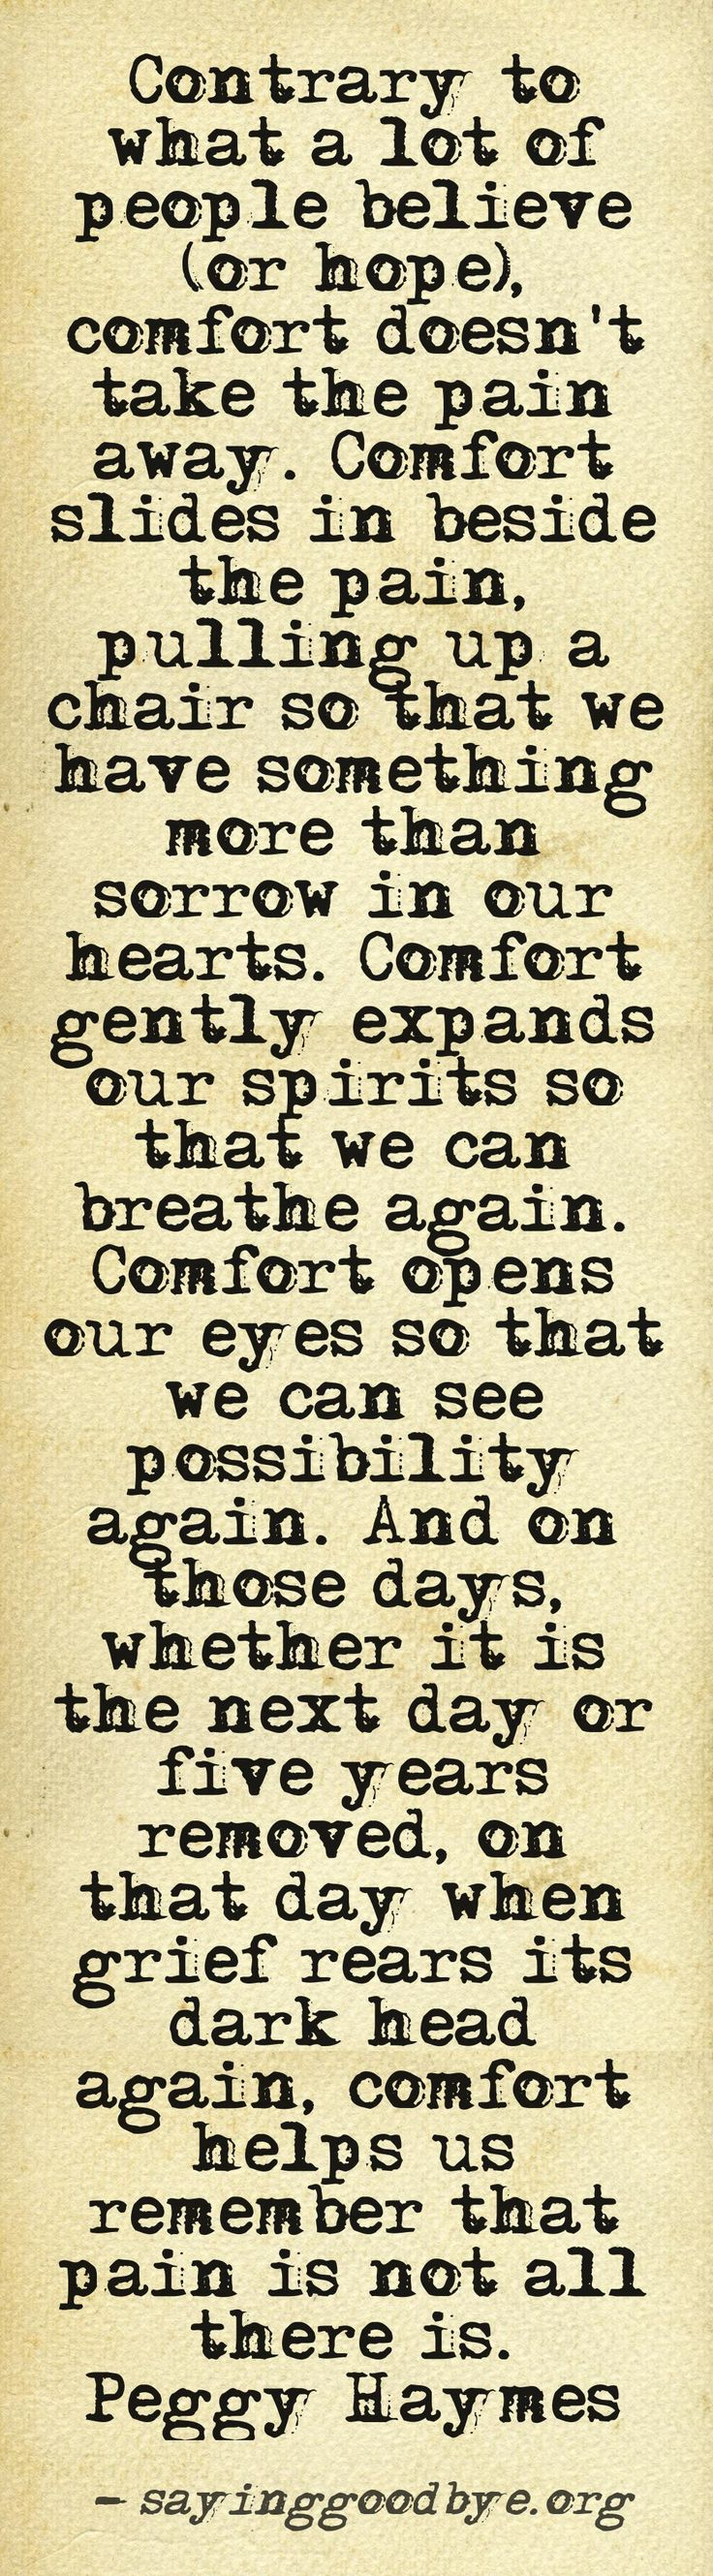 On loss... Comfort does not take away the pain. Comfort helps us remember that pain is not all there is..... Grief. Mourning. Loss. Death.